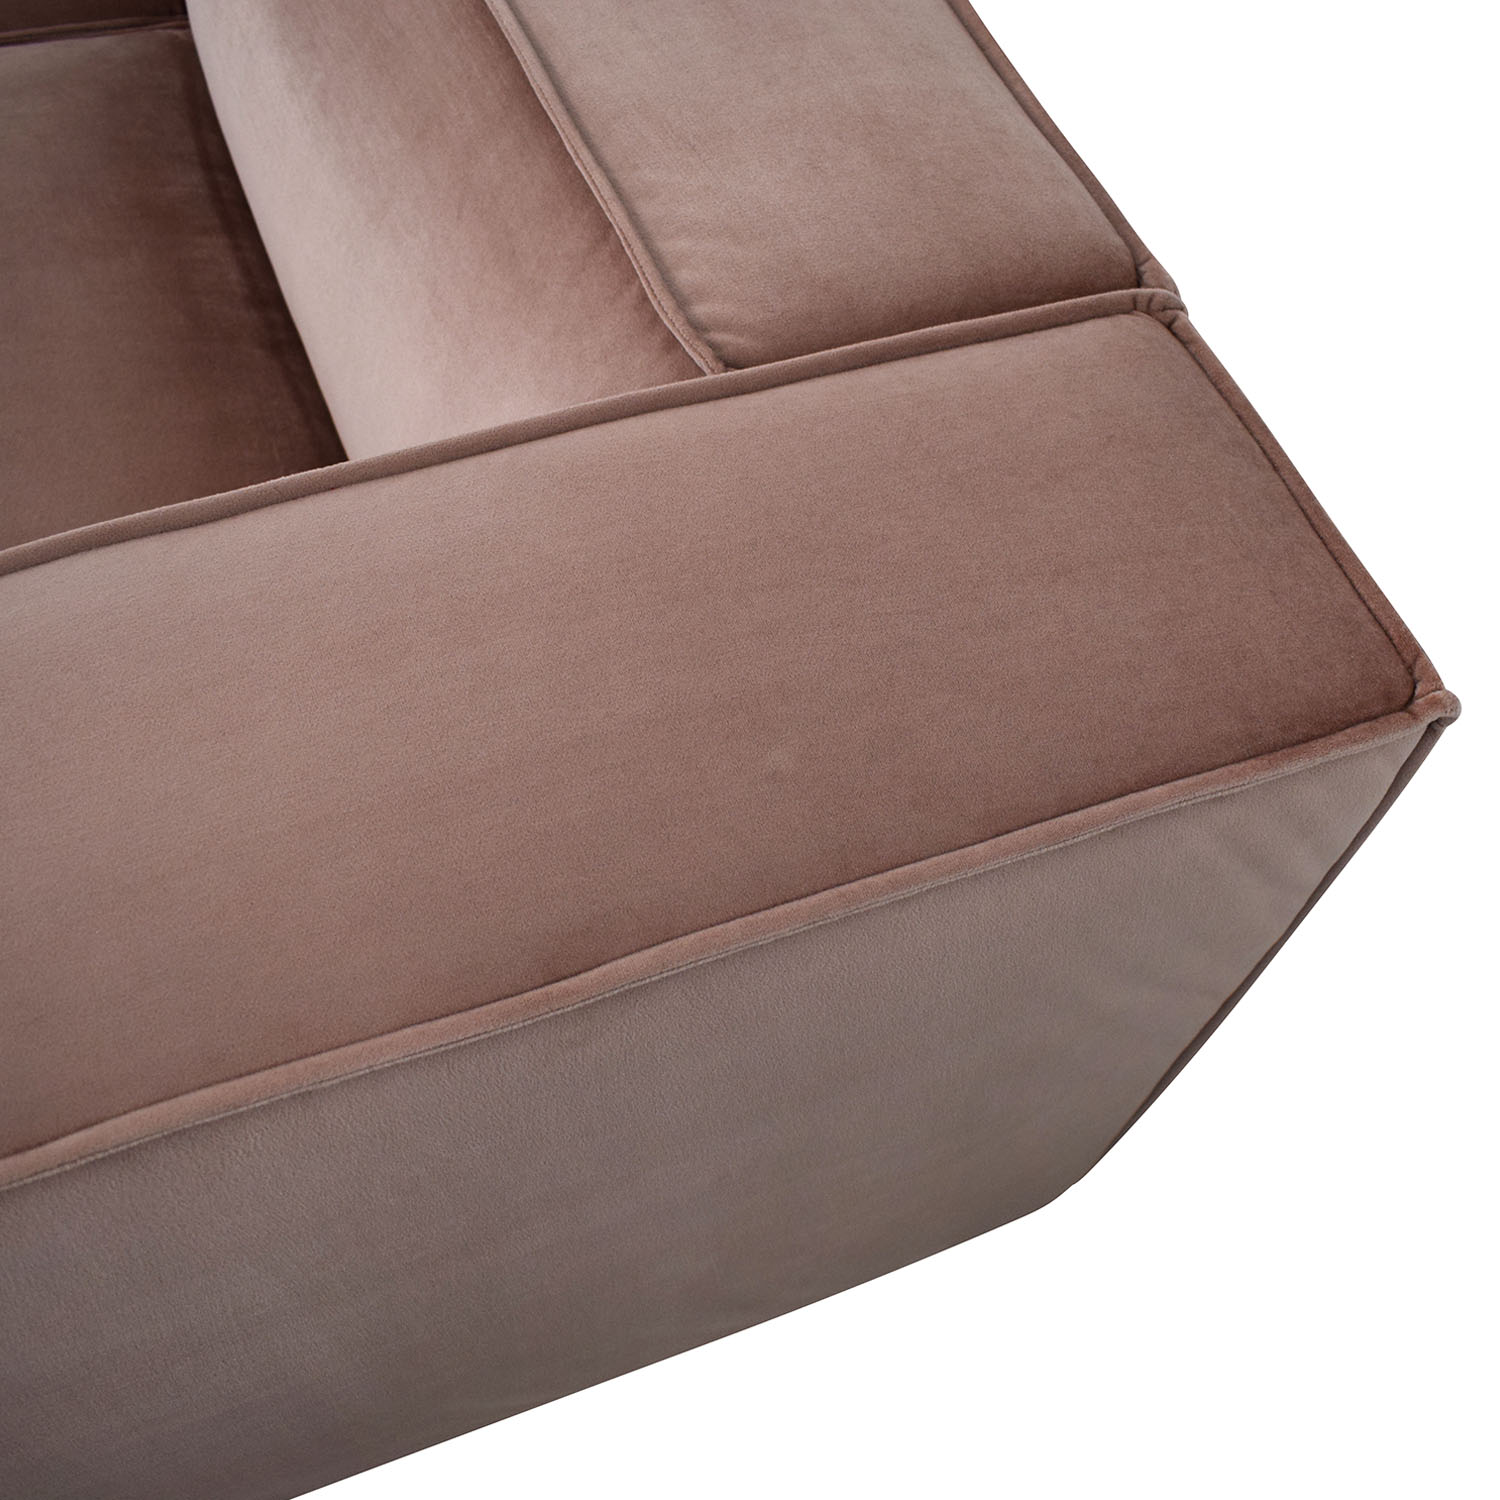 Interior Define Sectional Sofa with Right Chaise coupon